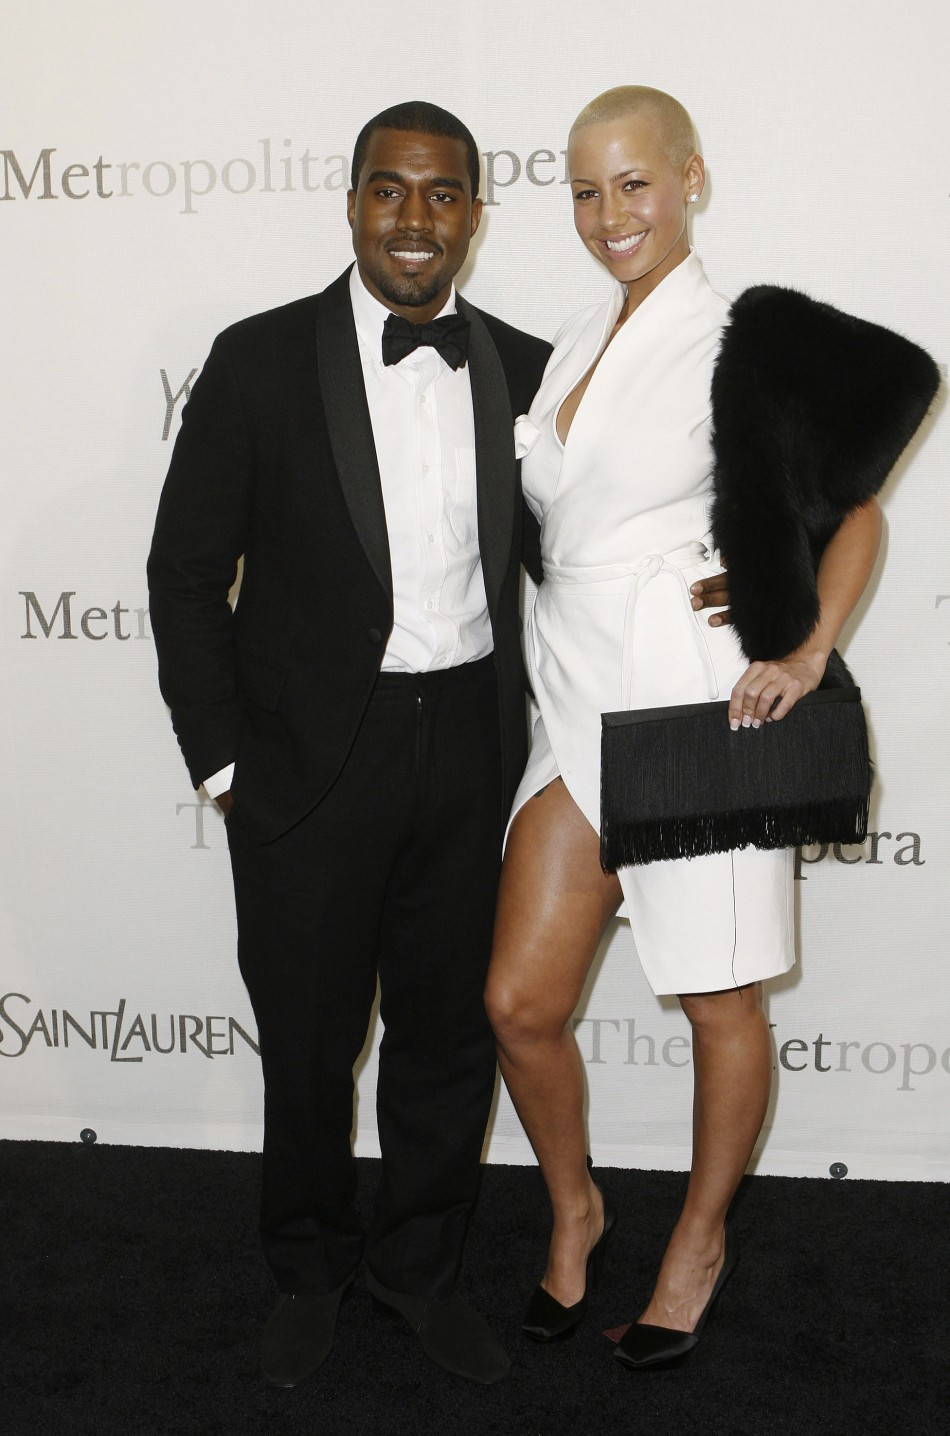 Amber Rose with Kanye West